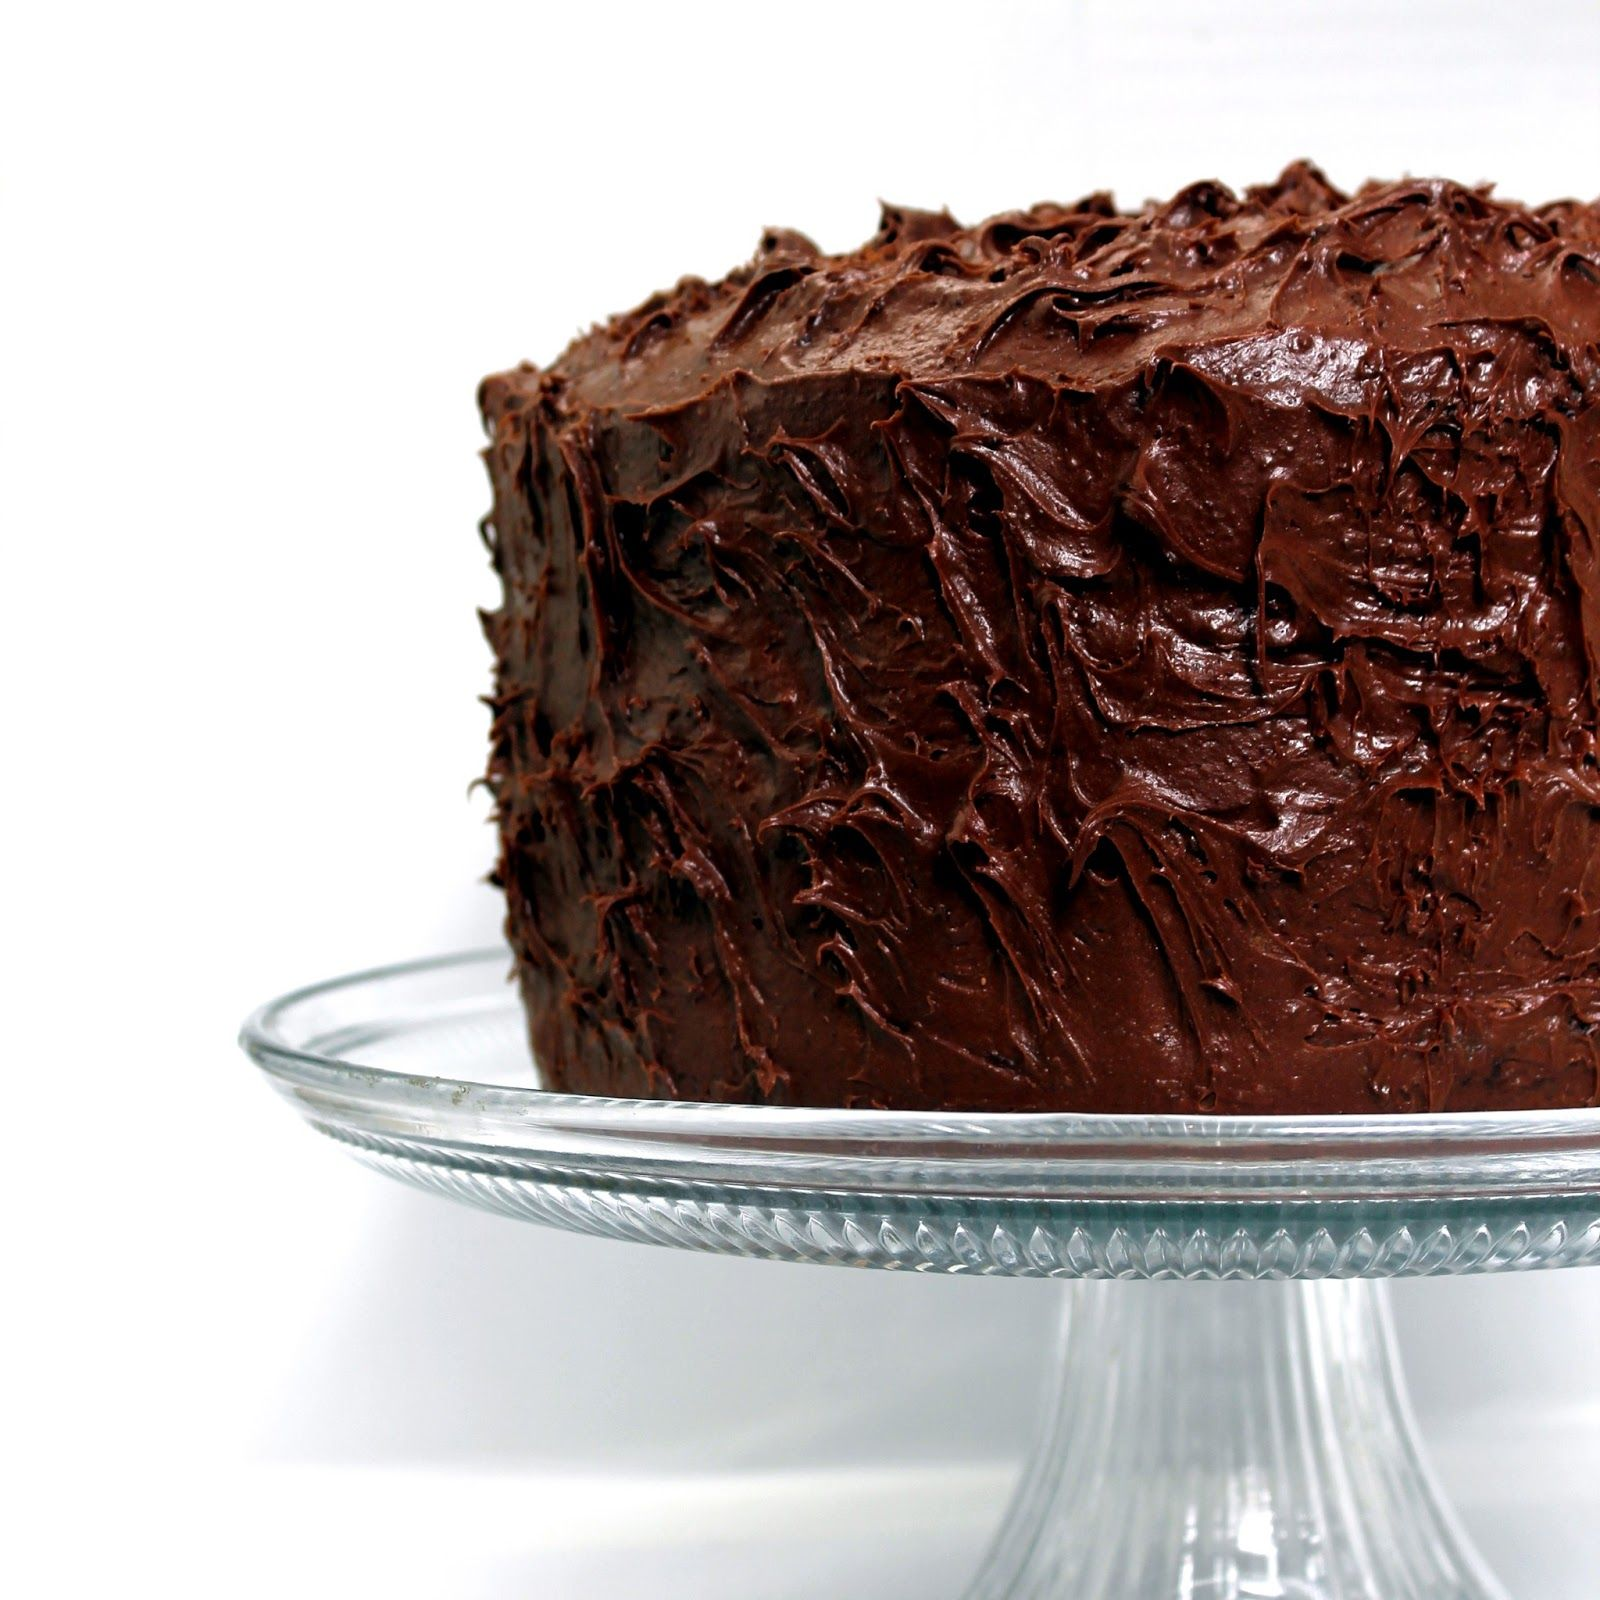 Check out The Most Amazing Chocolate Cake. It's so easy to make ...